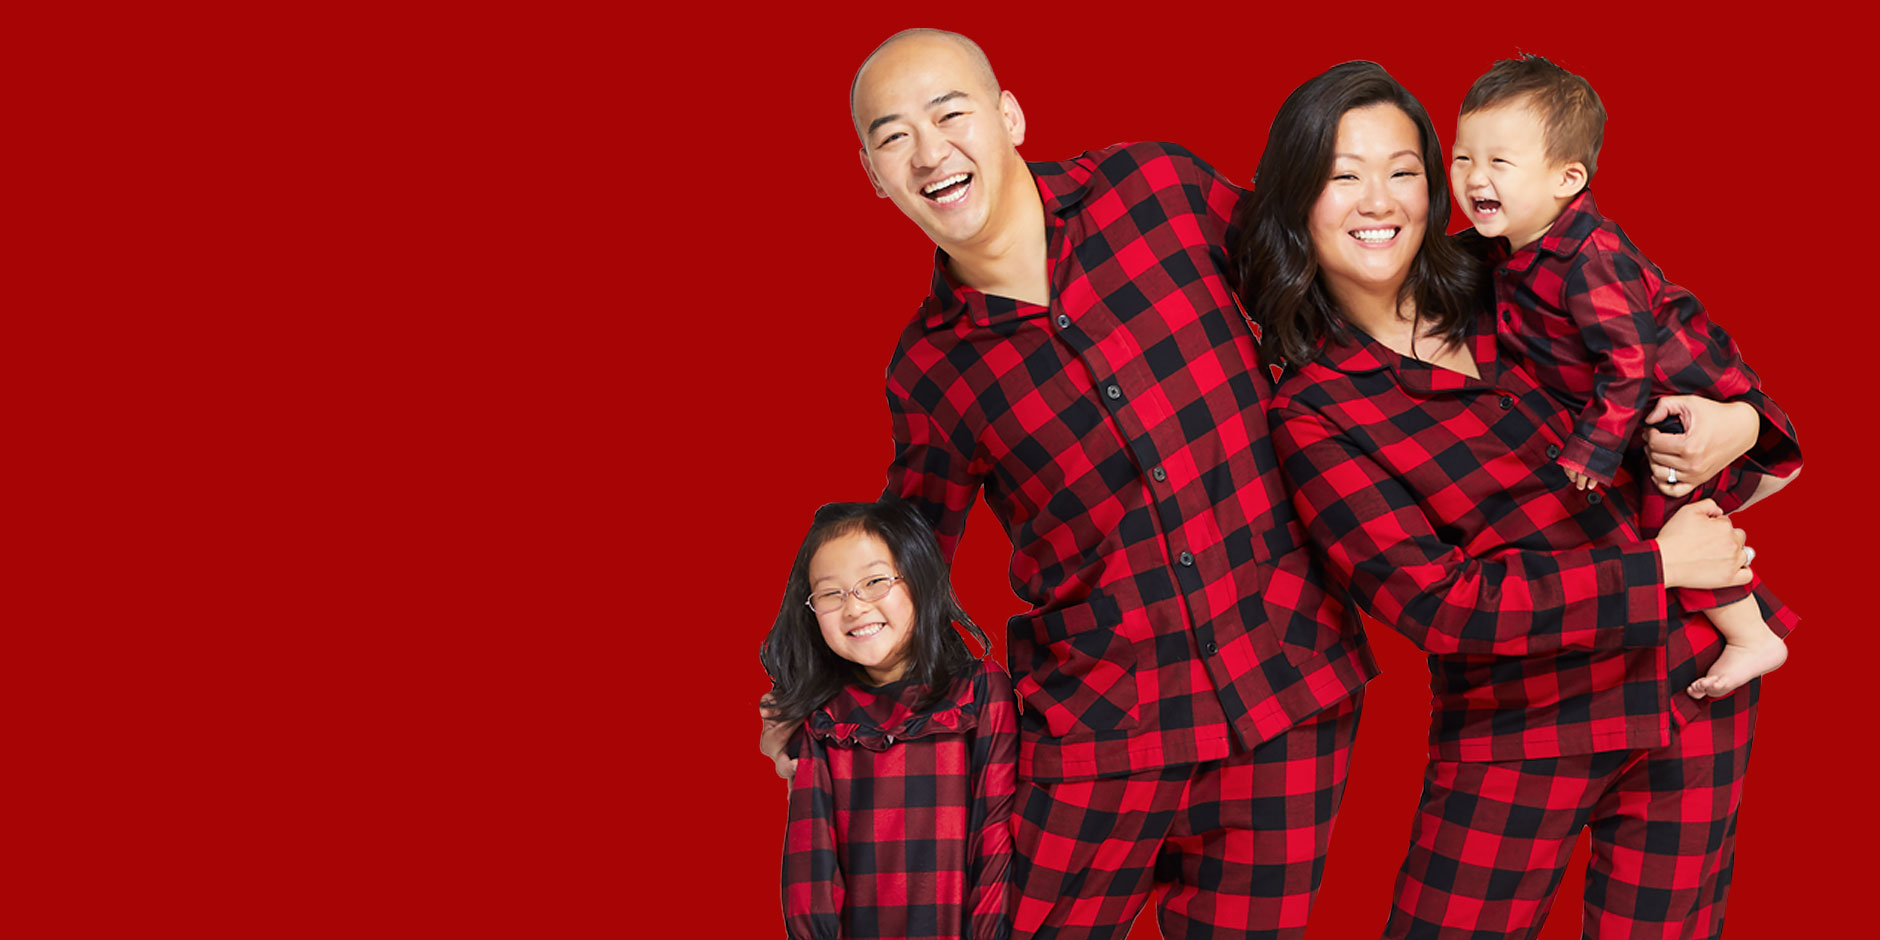 A family in matching buffalo check pajamas